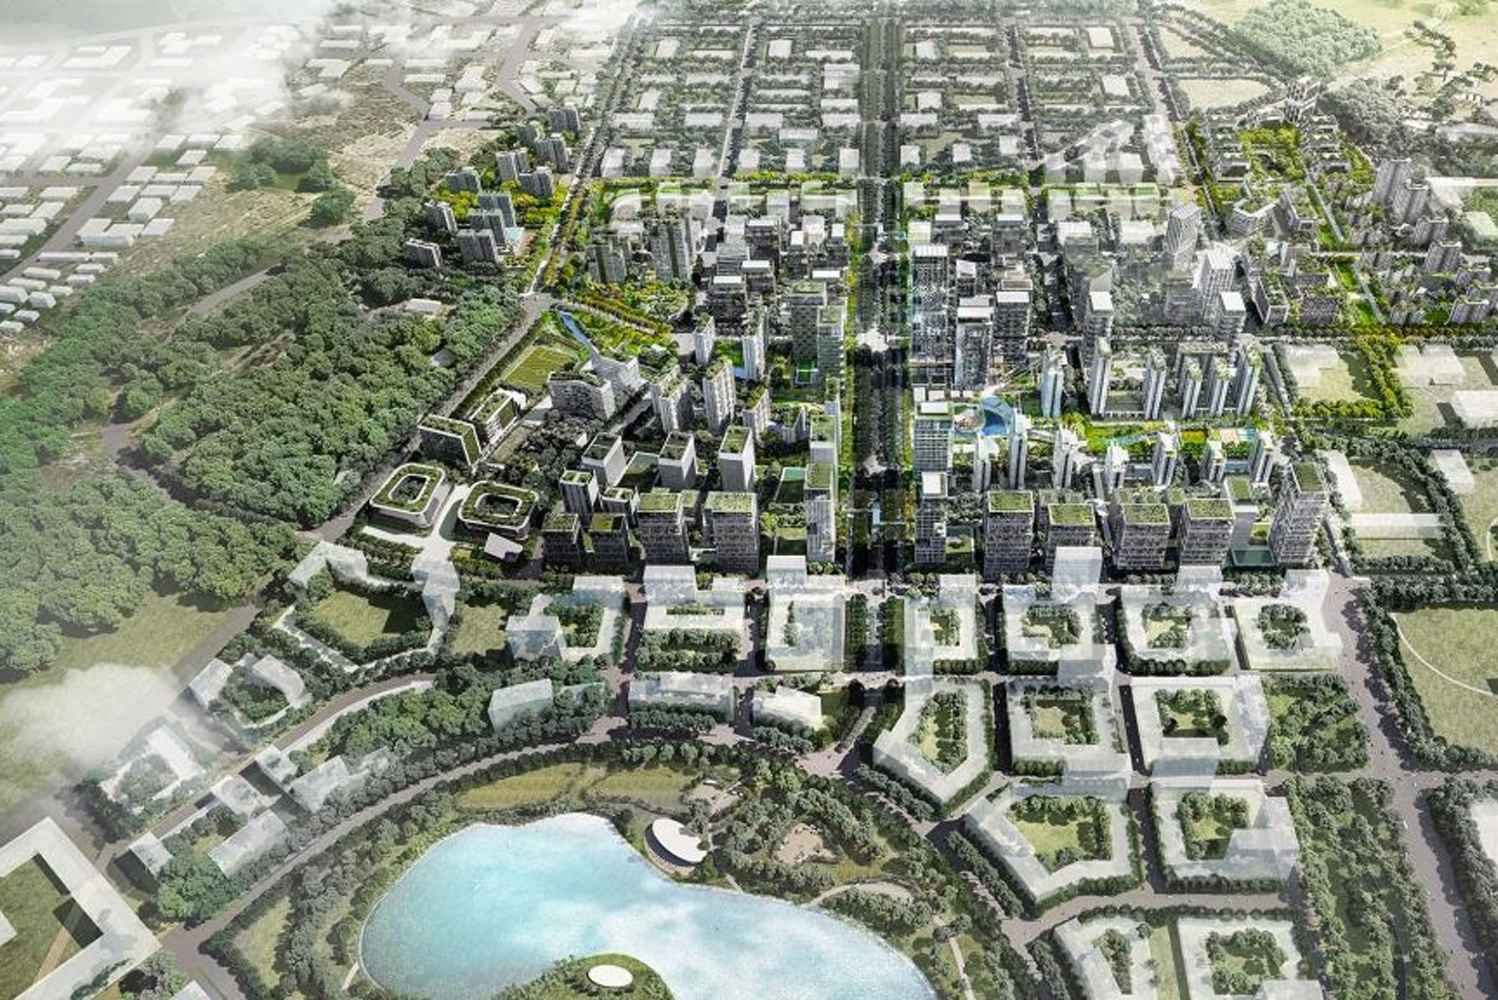 The project followed a compact city model with the creation of a series of connected neighborhoods.